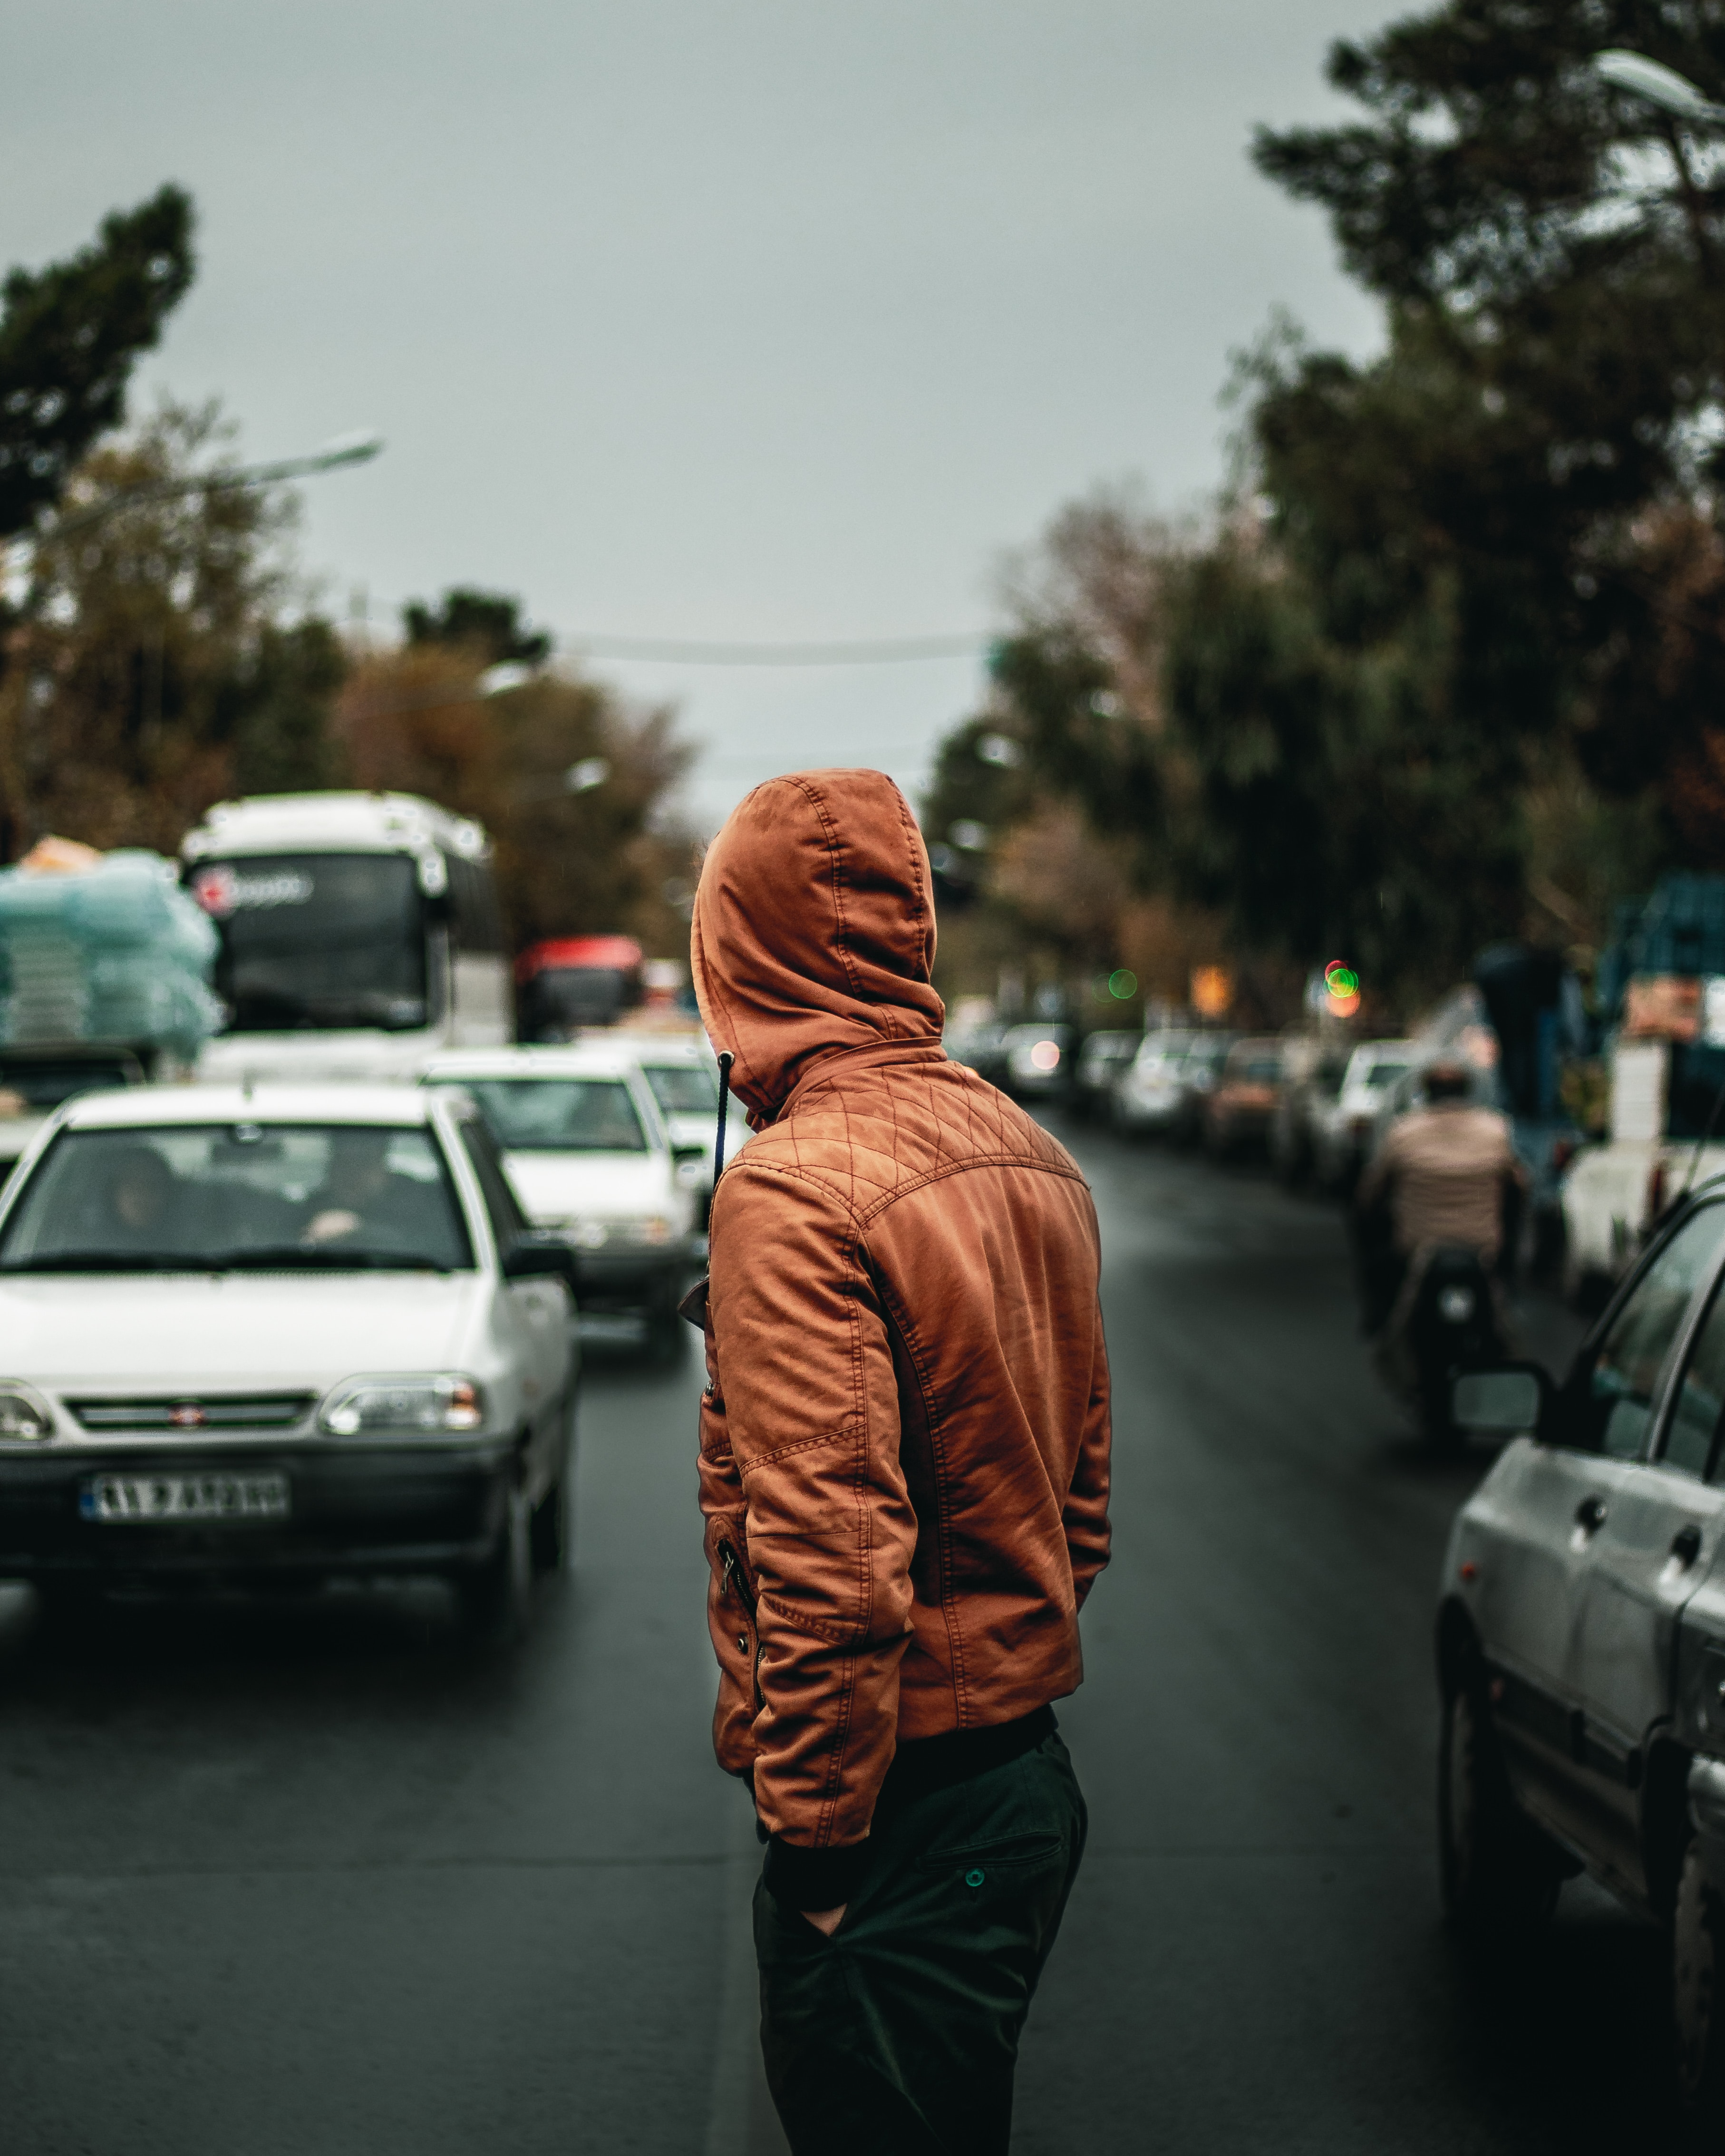 153969 Screensavers and Wallpapers Road for phone. Download Human, Auto, Miscellanea, Miscellaneous, Road, Person, Street, Hood pictures for free